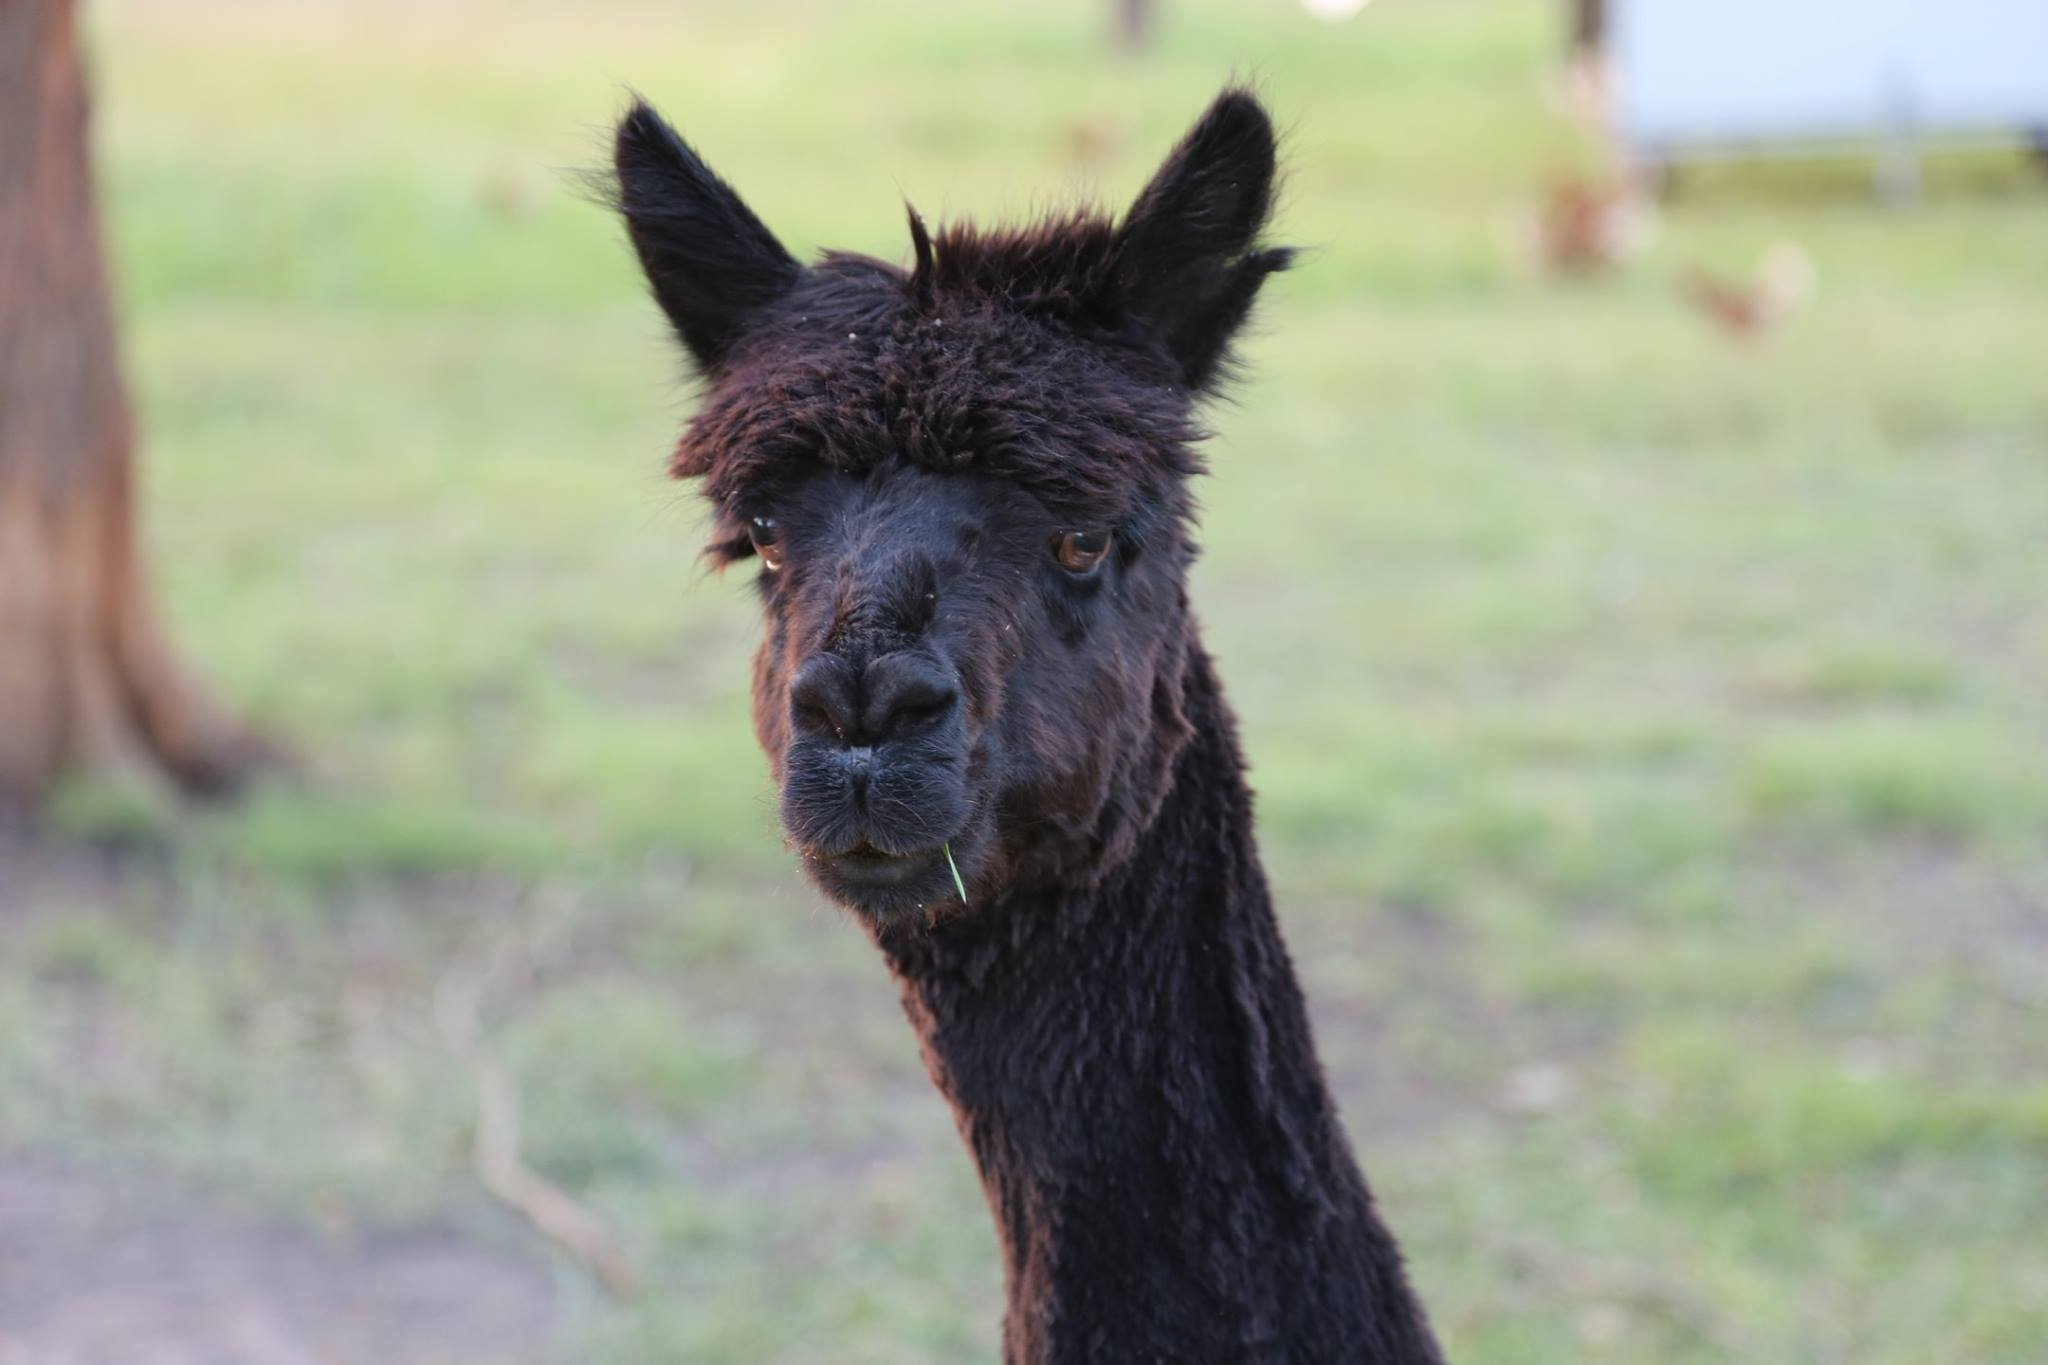 One of our magnificent alpacas